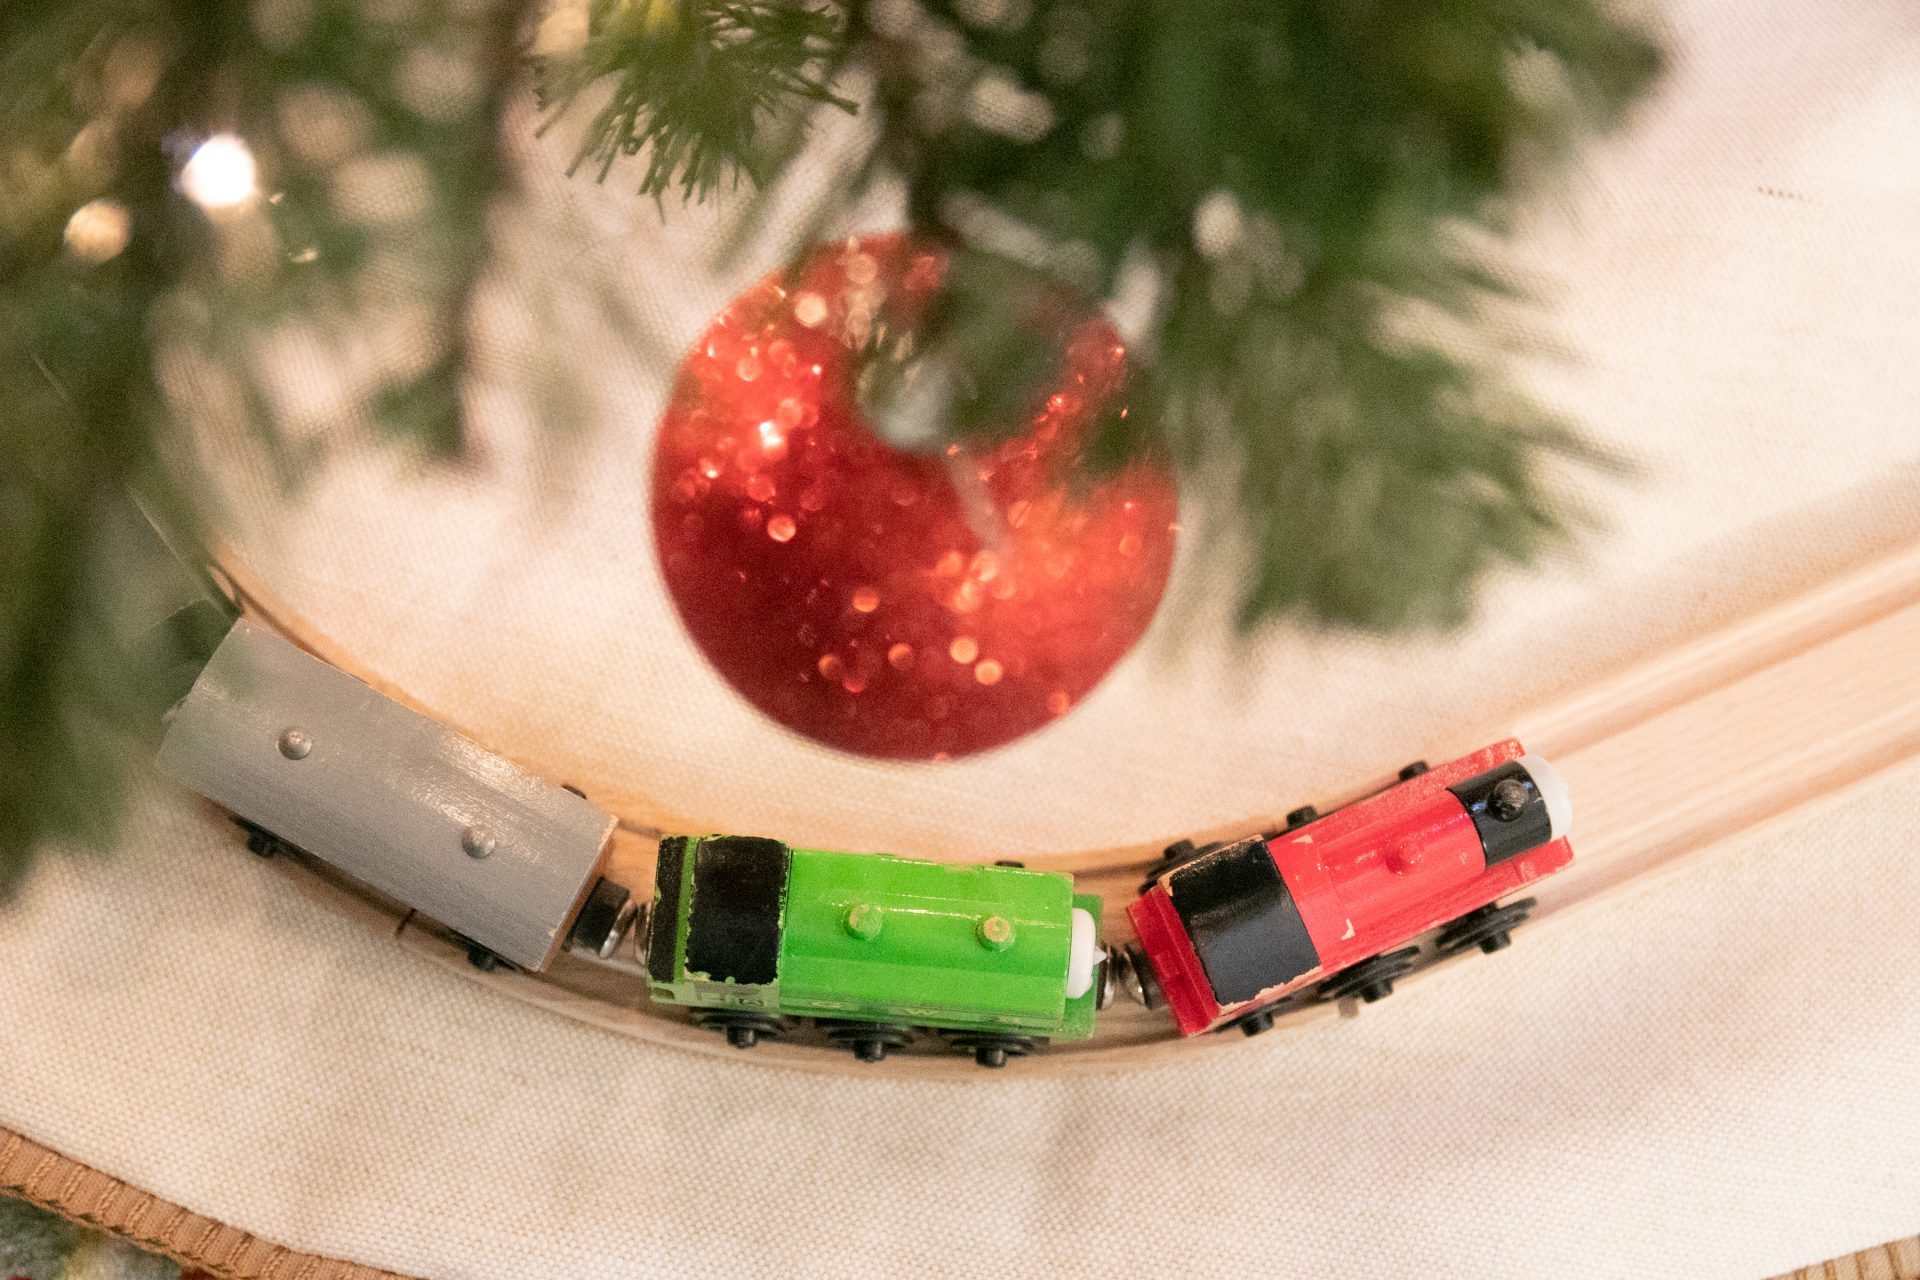 Toy Train Under Glass Ball Ornament